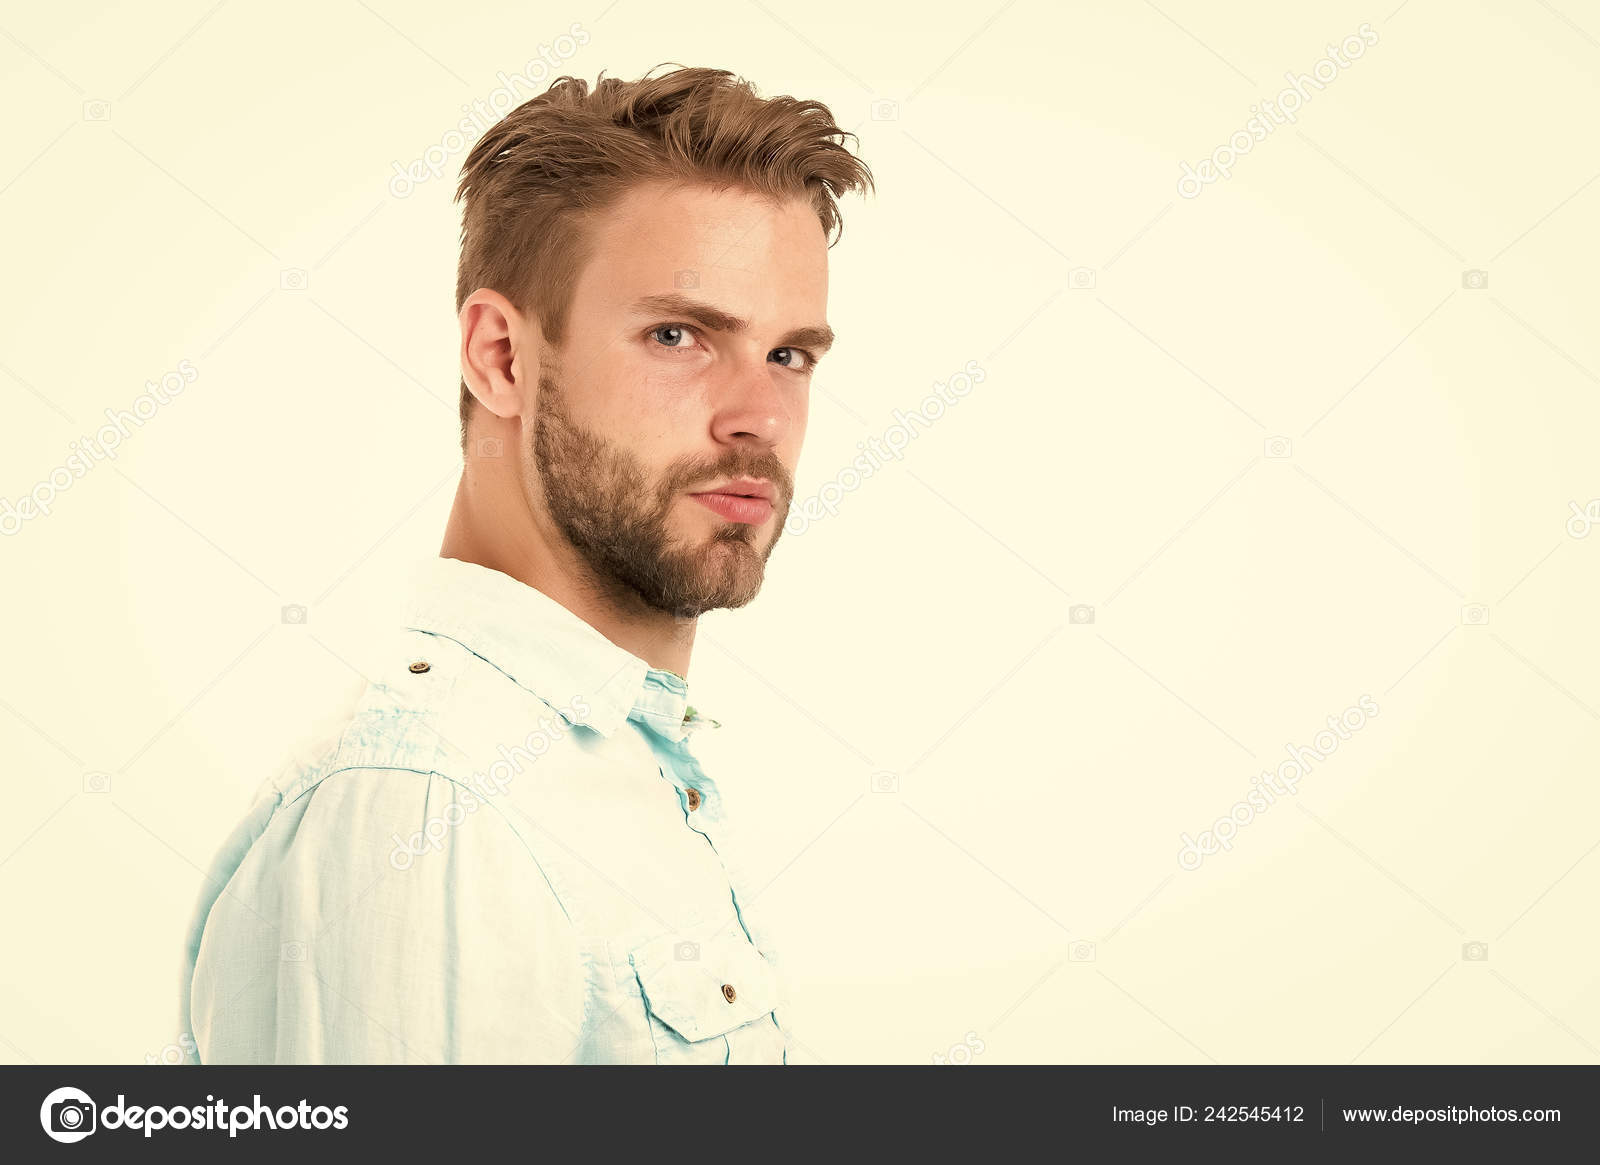 Metrosexual Concept Man Bristle Serious Strict Face Looks Back Isolated White Man Beard Unshaven Guy Looks Handsome And Cool Handsome In Style Guy Bearded Attractive Cares About Appearance Stock Photo Image